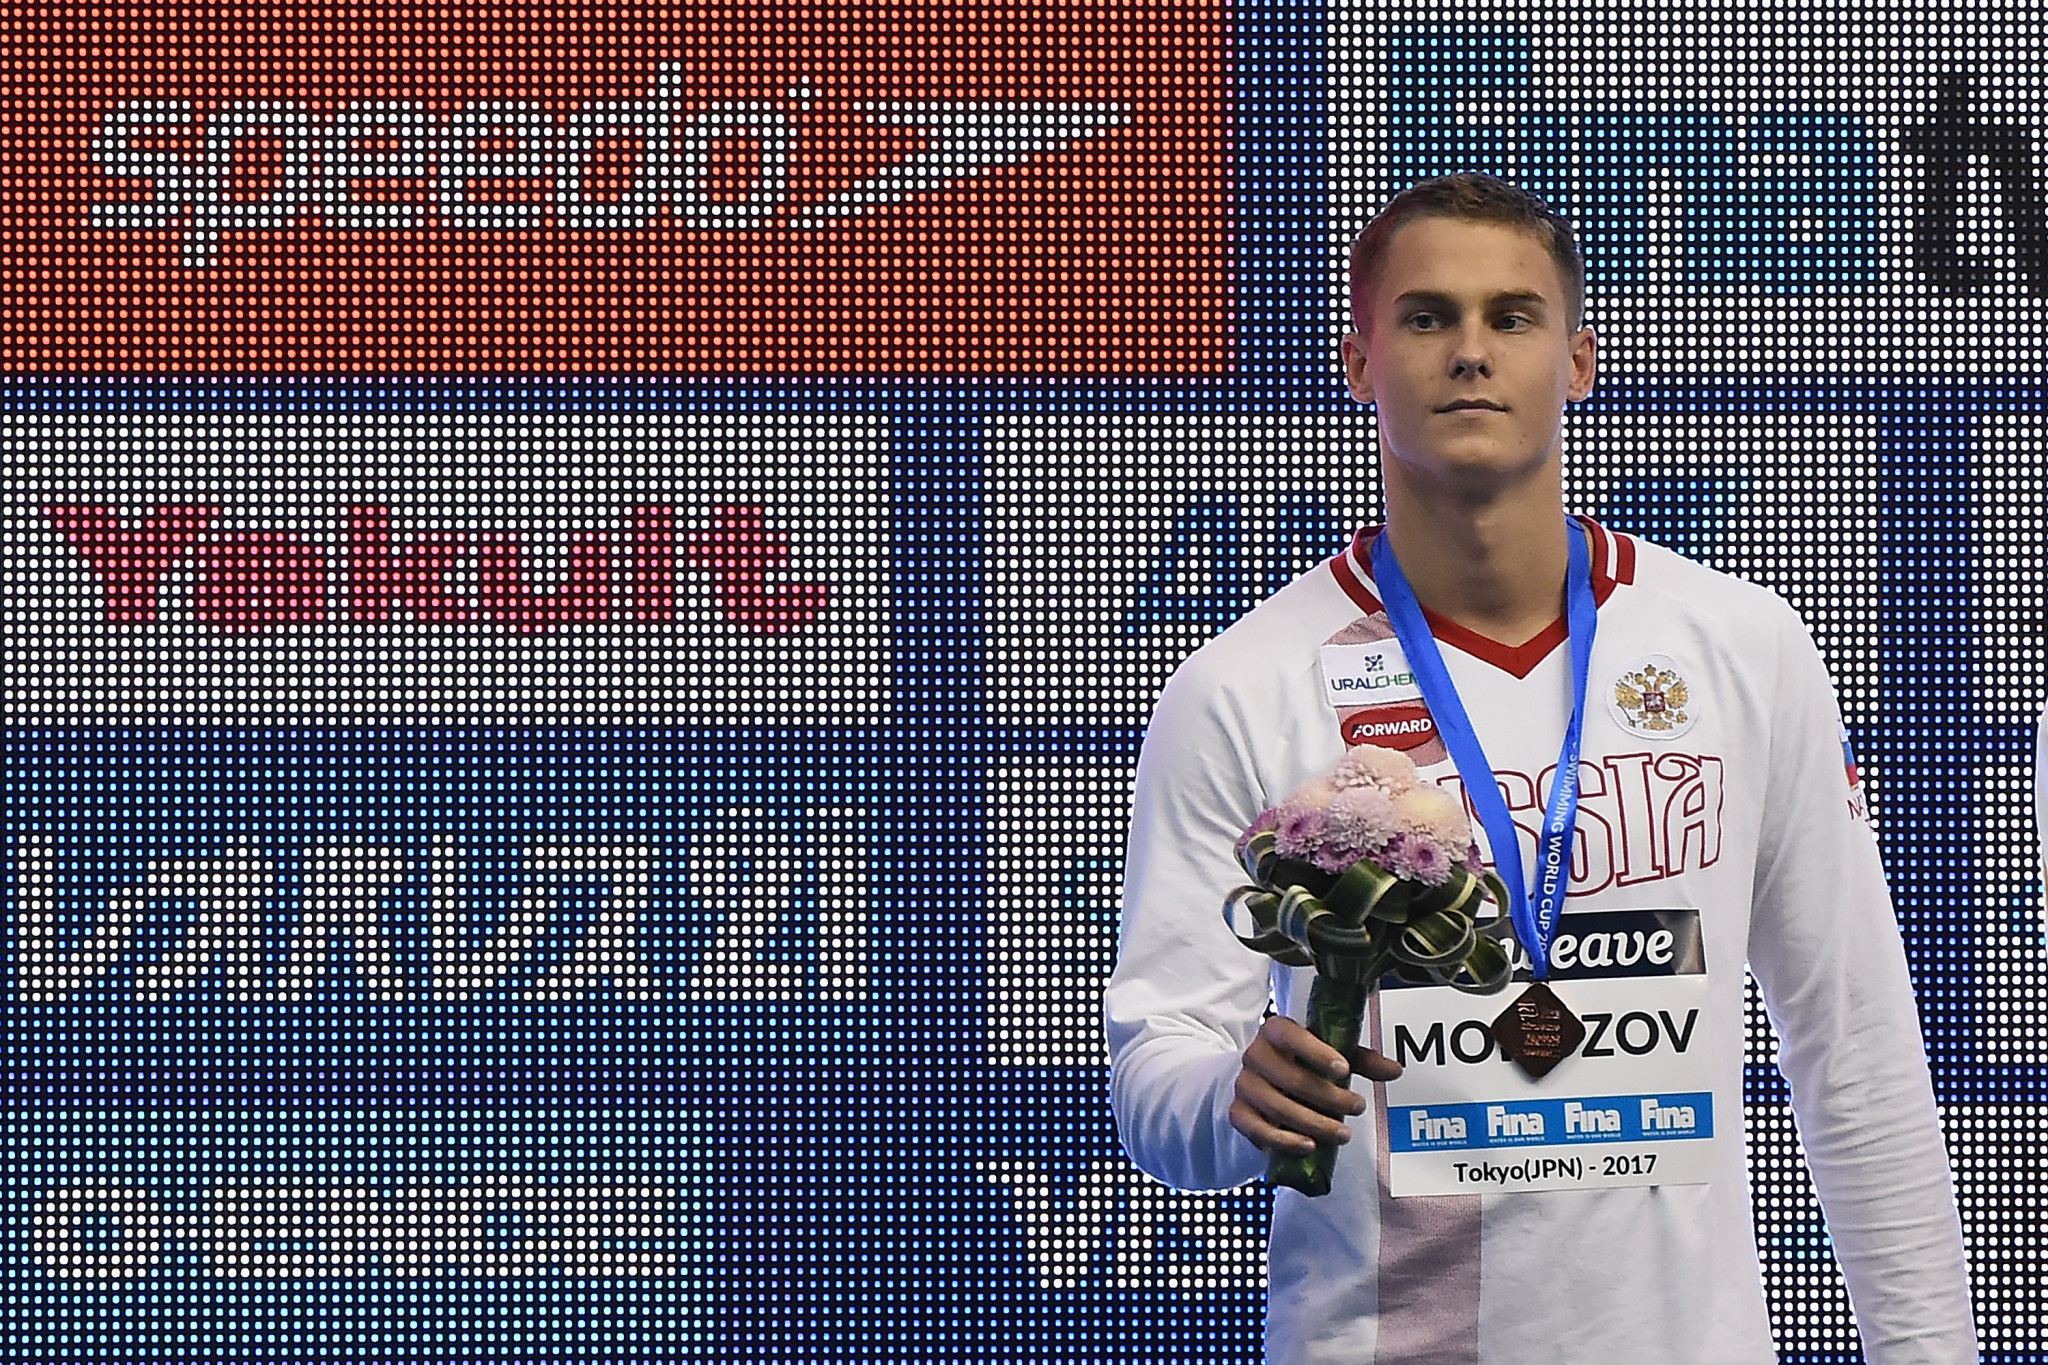 Two victories from Russia's Vladimir Morozov at the FINA World Cup in Singapore kept the men's title race open - just ©Getty Images